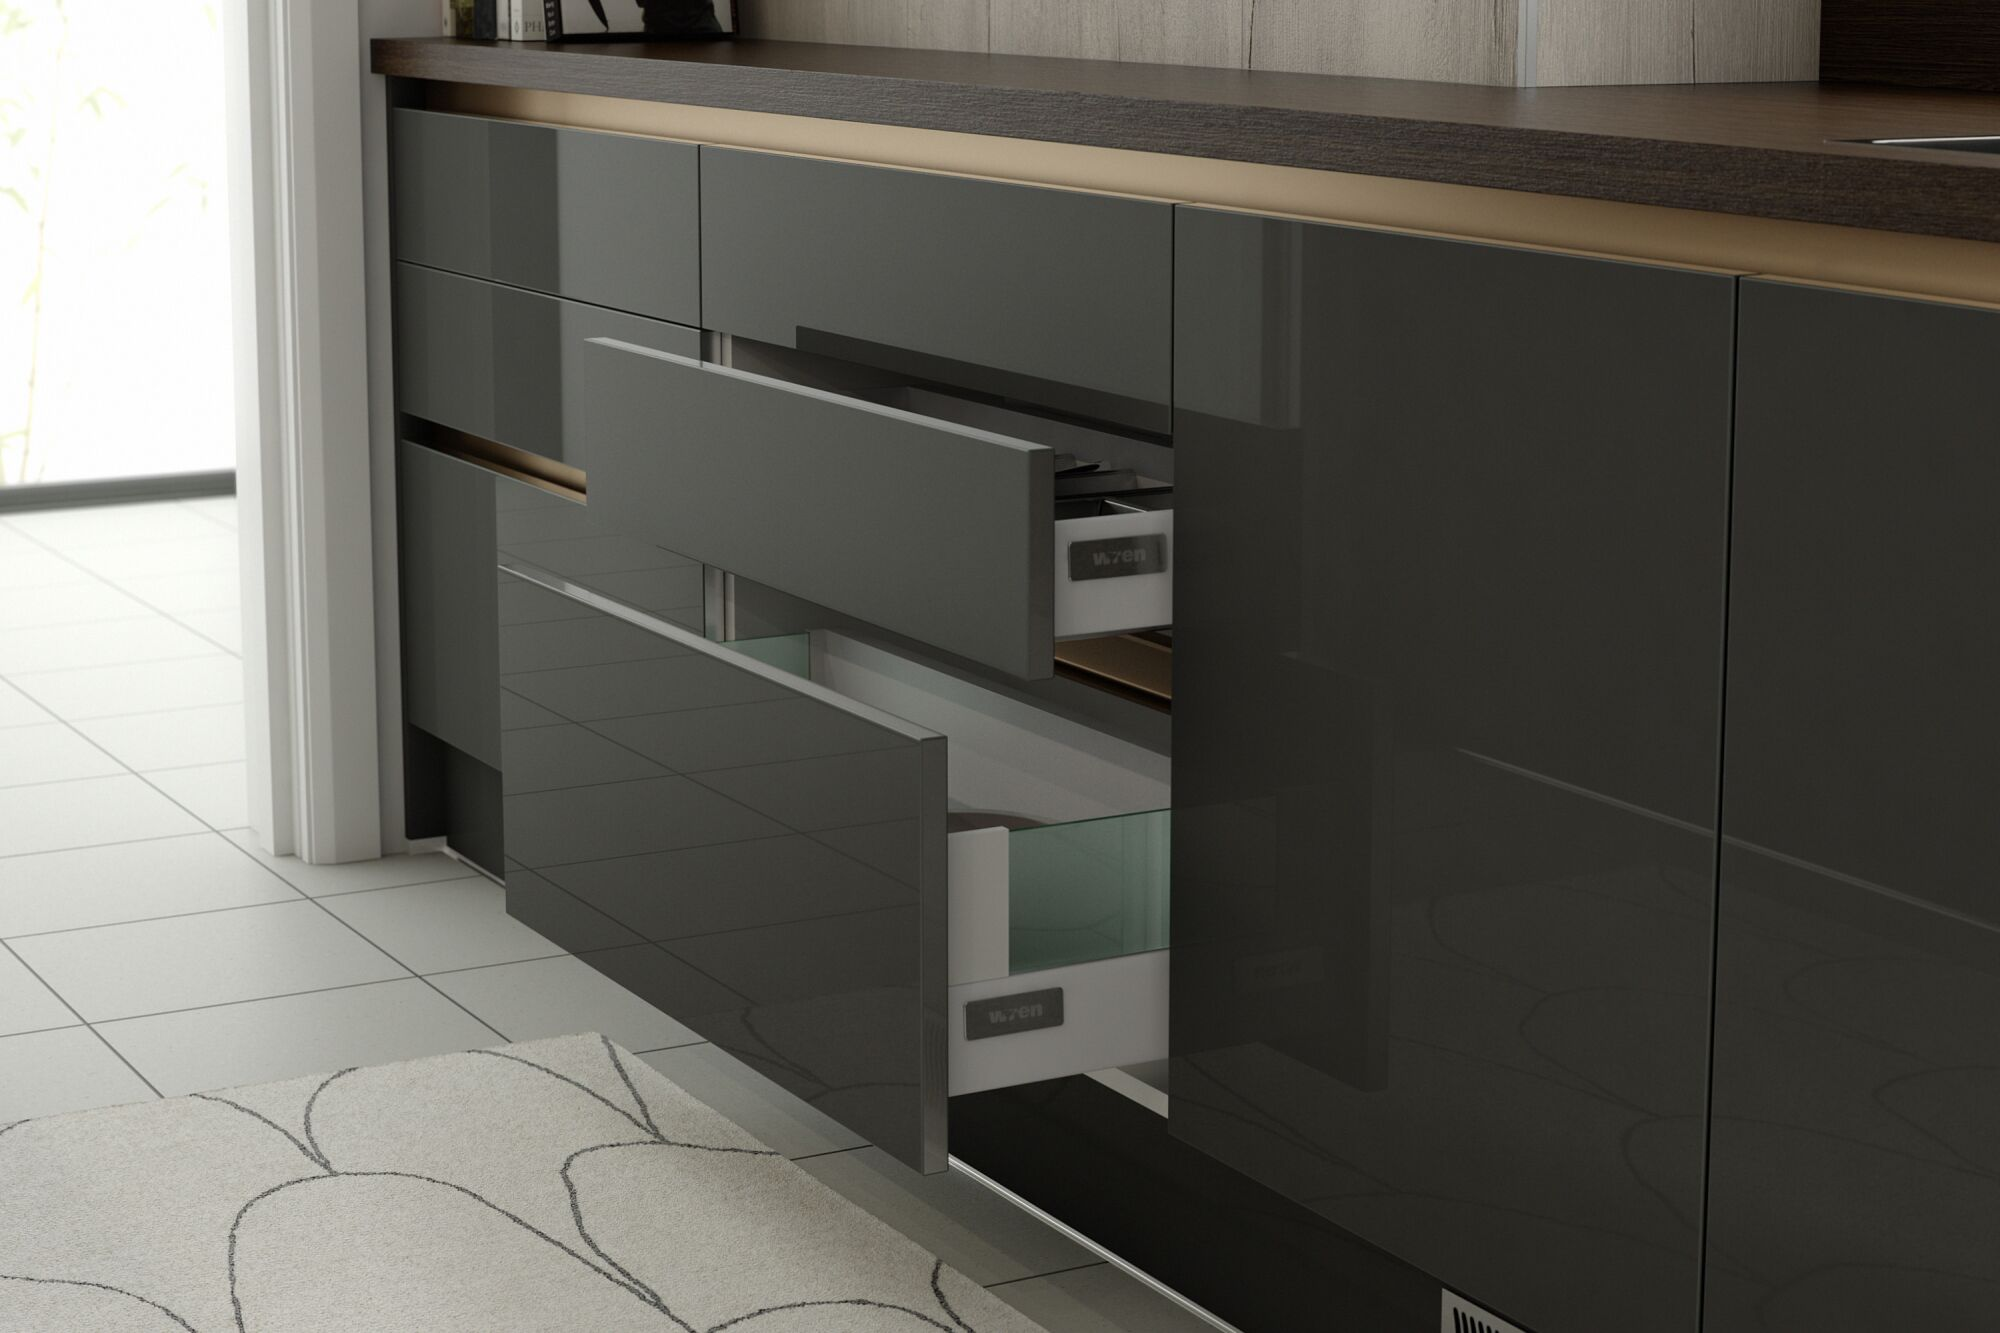 Milano Stainless Steel in Charcoal and Smoked Oak kitchen